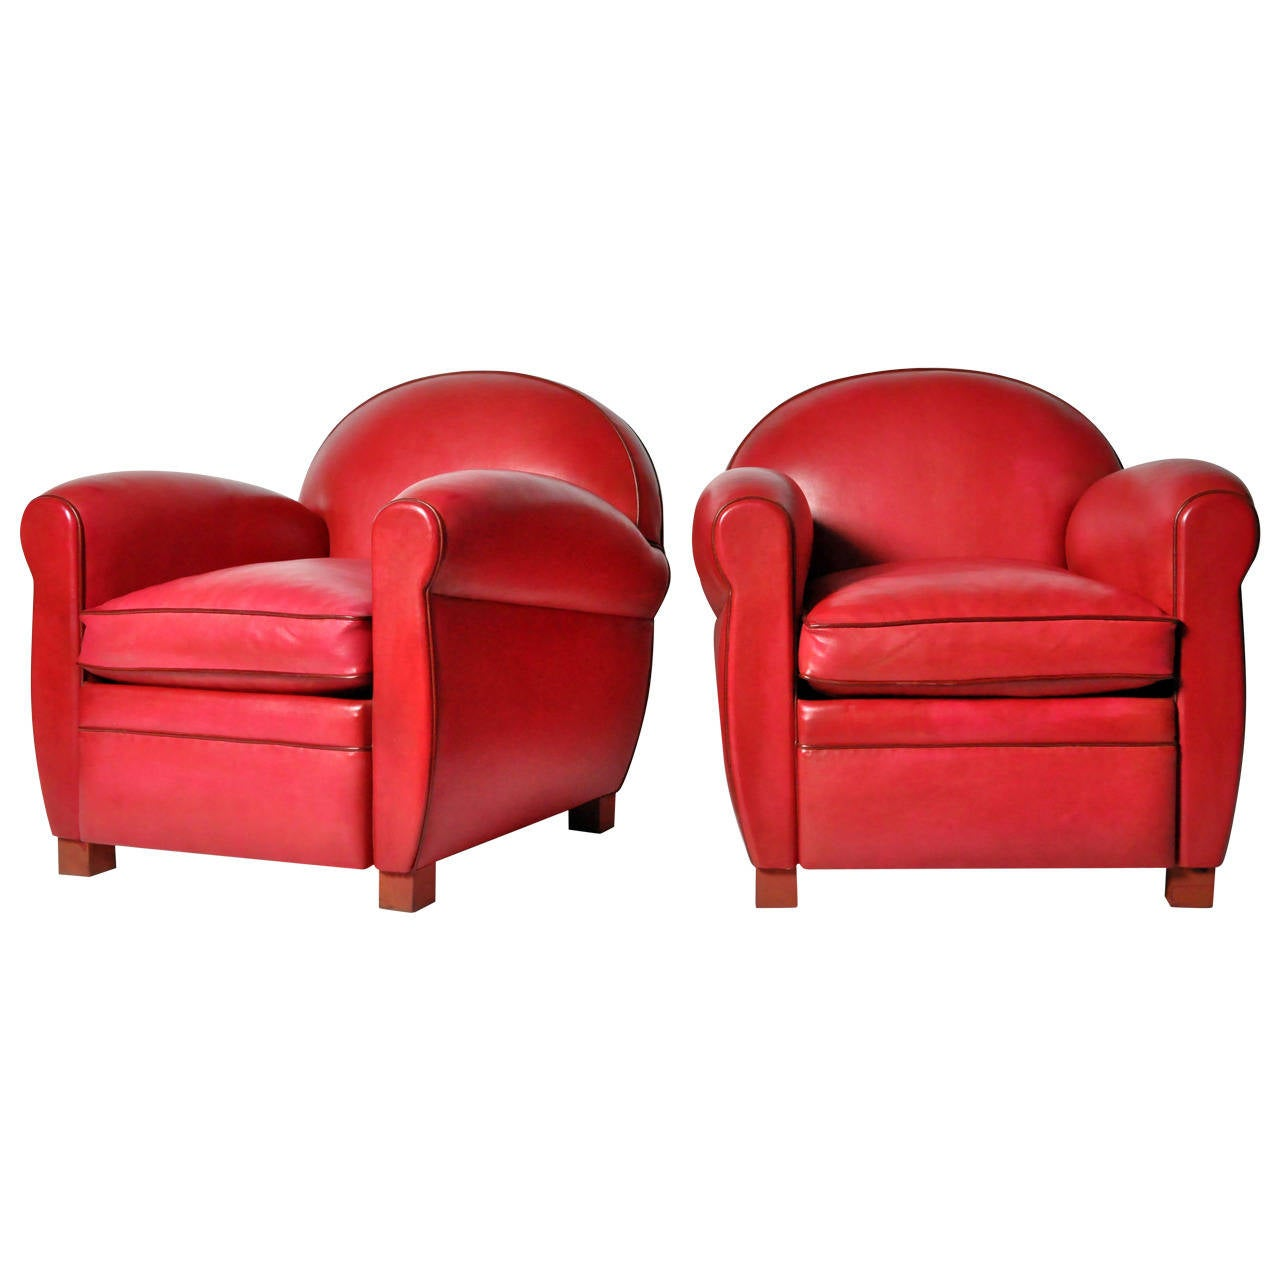 red club chair rentals sacramento pair of round back leather chairs at 1stdibs